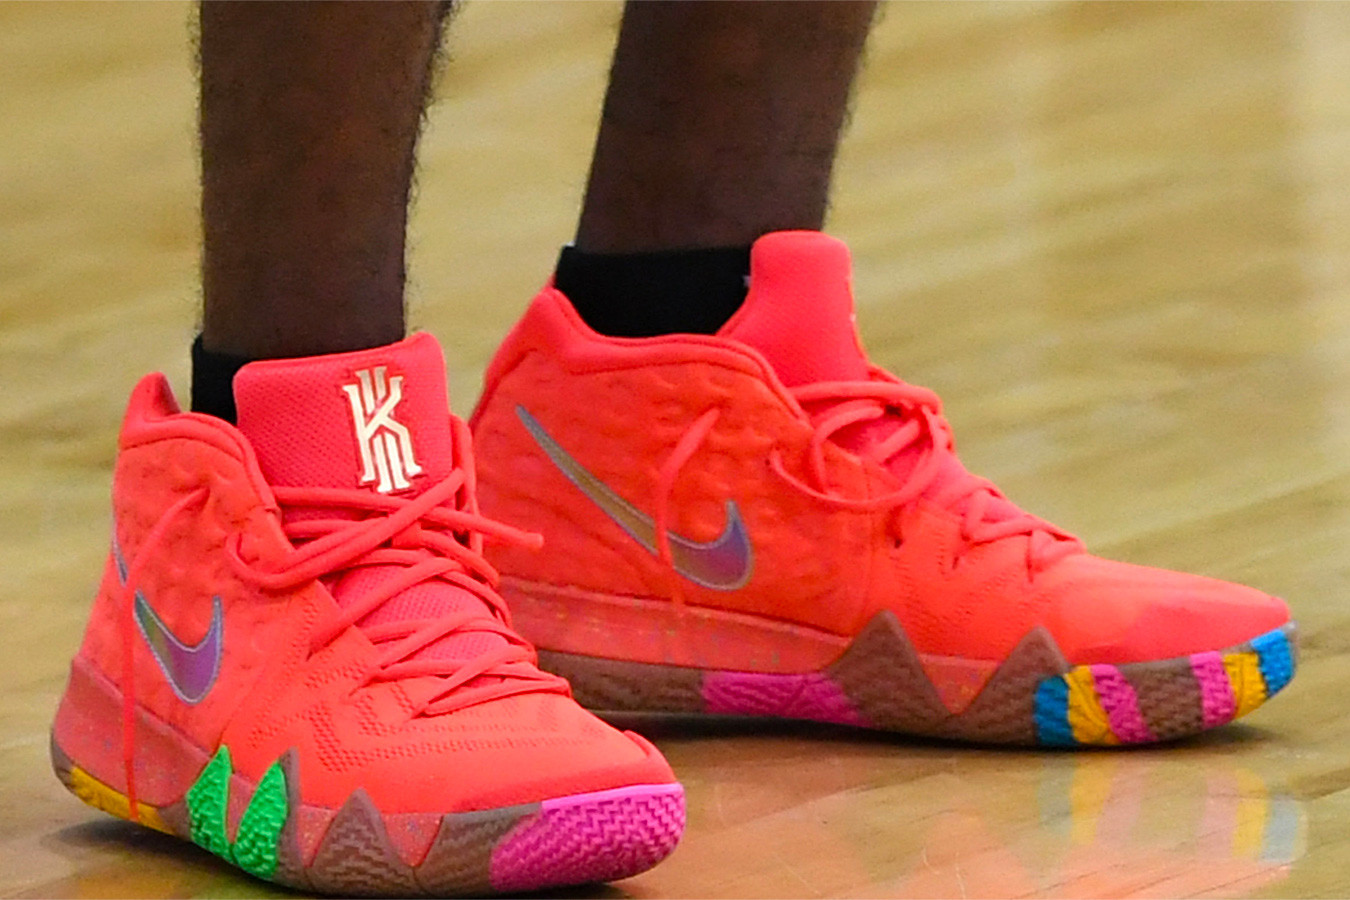 green kyrie 4 lucky charms